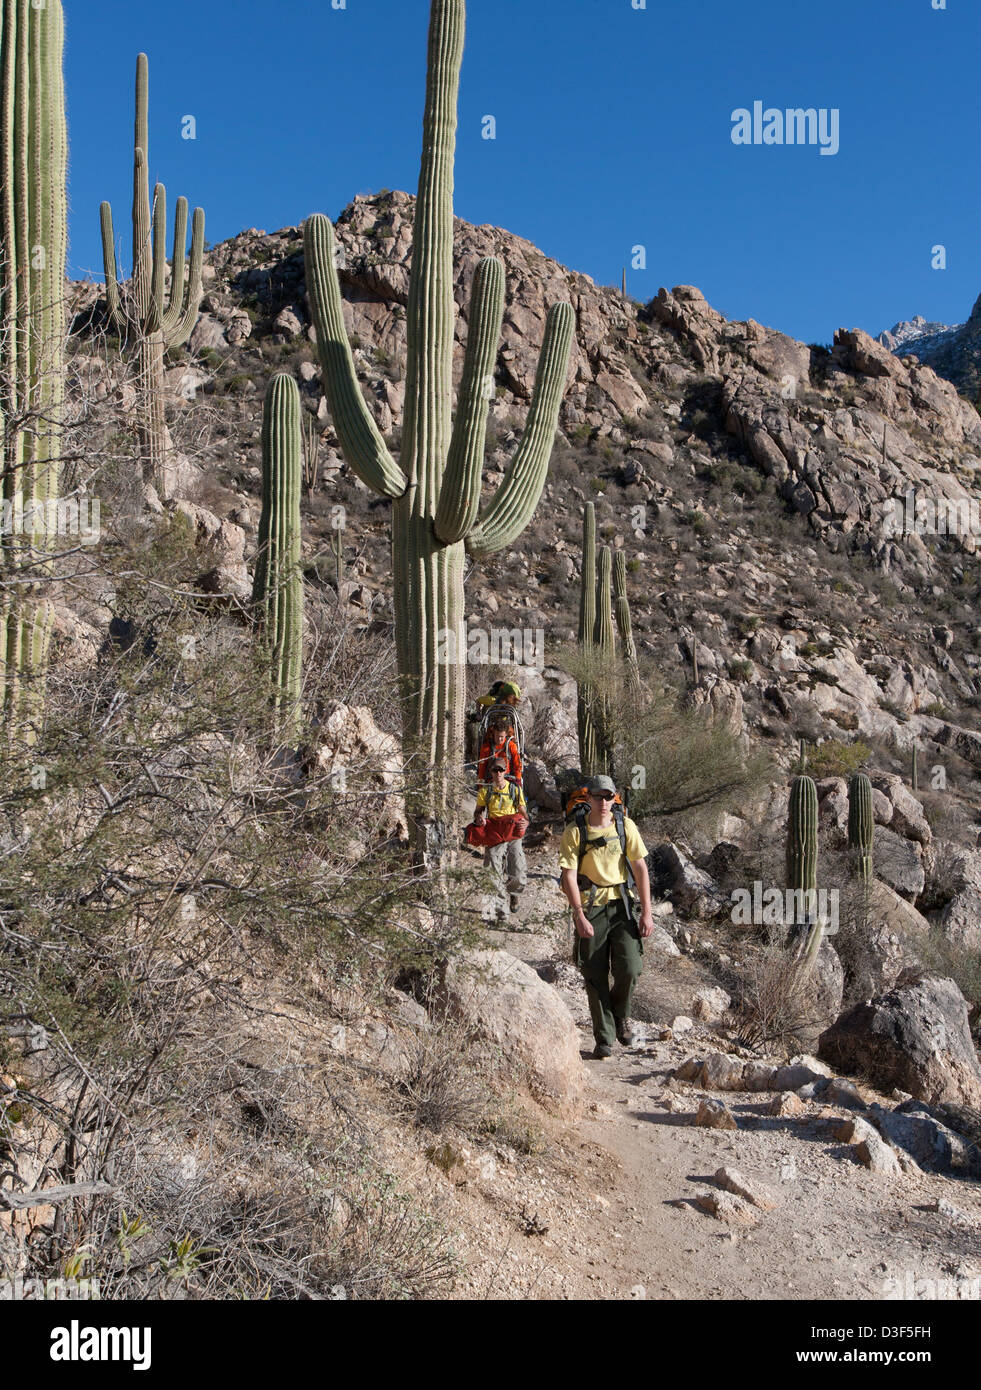 Members the Southern Arizona Rescue Association team descending out of the mountains after going up to help a fall - Stock Image